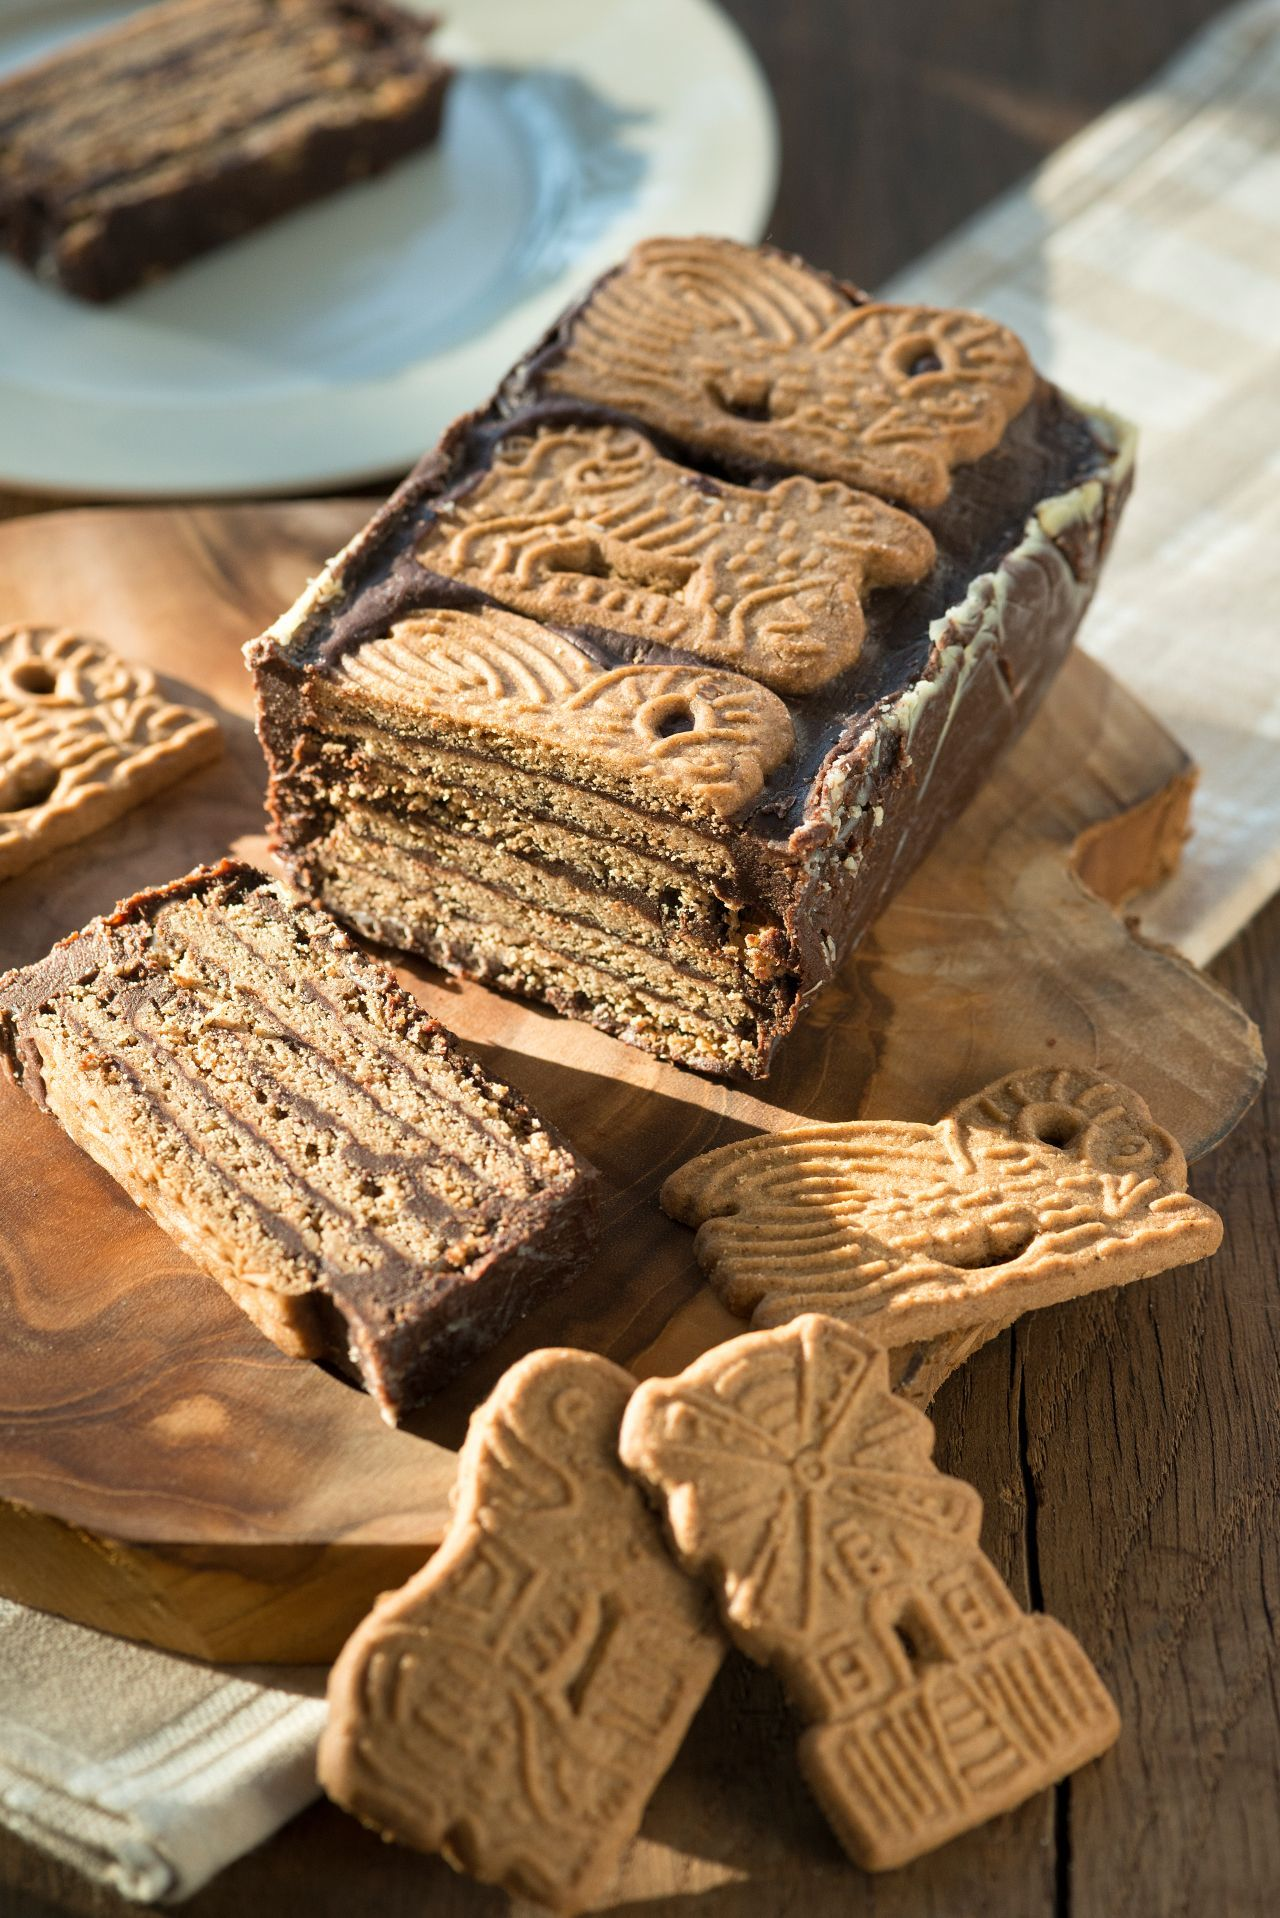 Cold dog with speculoos -  Cold dog with speculoos The Effective Pictures We Offer You About ricetta...